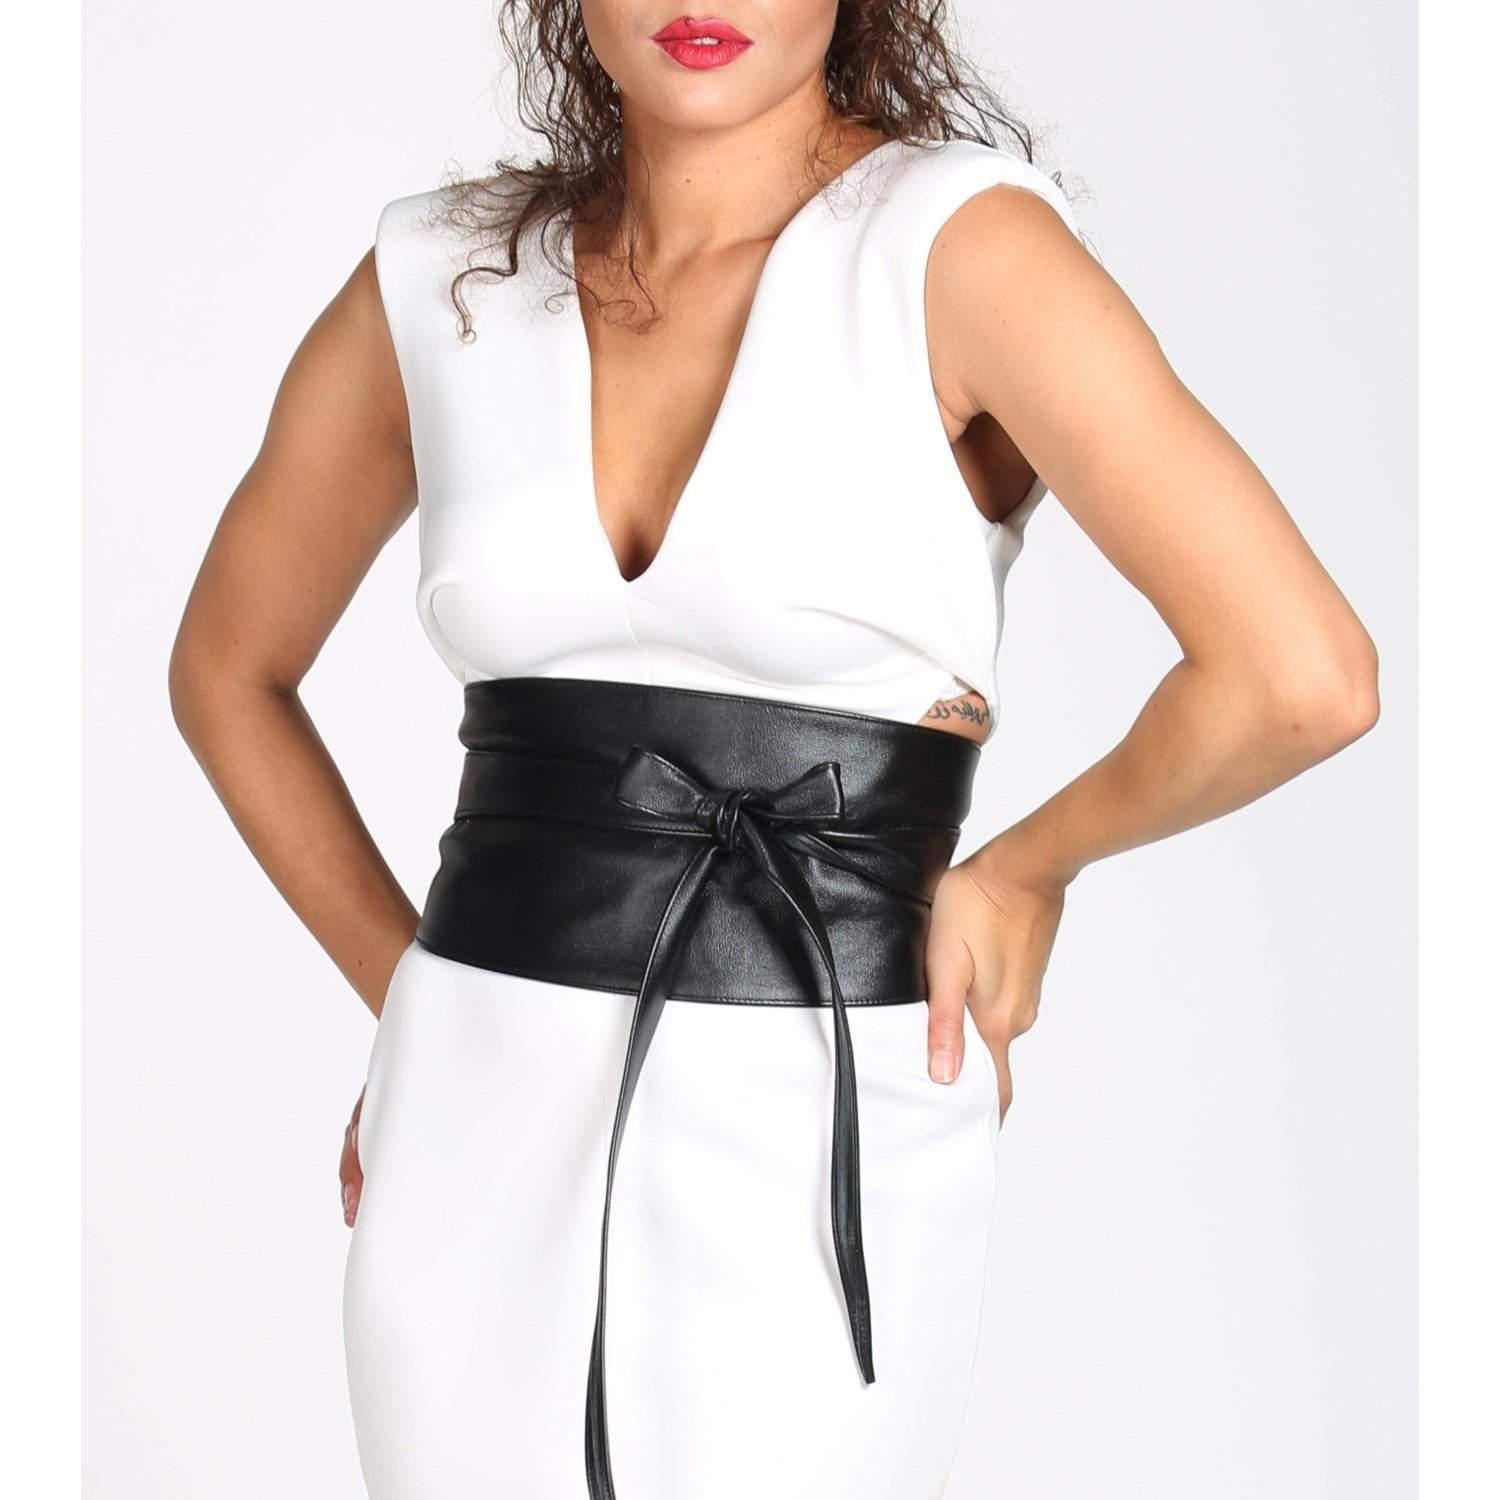 Corset Leather Belt | Black Corset Belt | obi belt | Plus size belts | Corset Belt Plus Size | Black waist belt | cinch belt | Obi Tie Belt - loveyaayaa